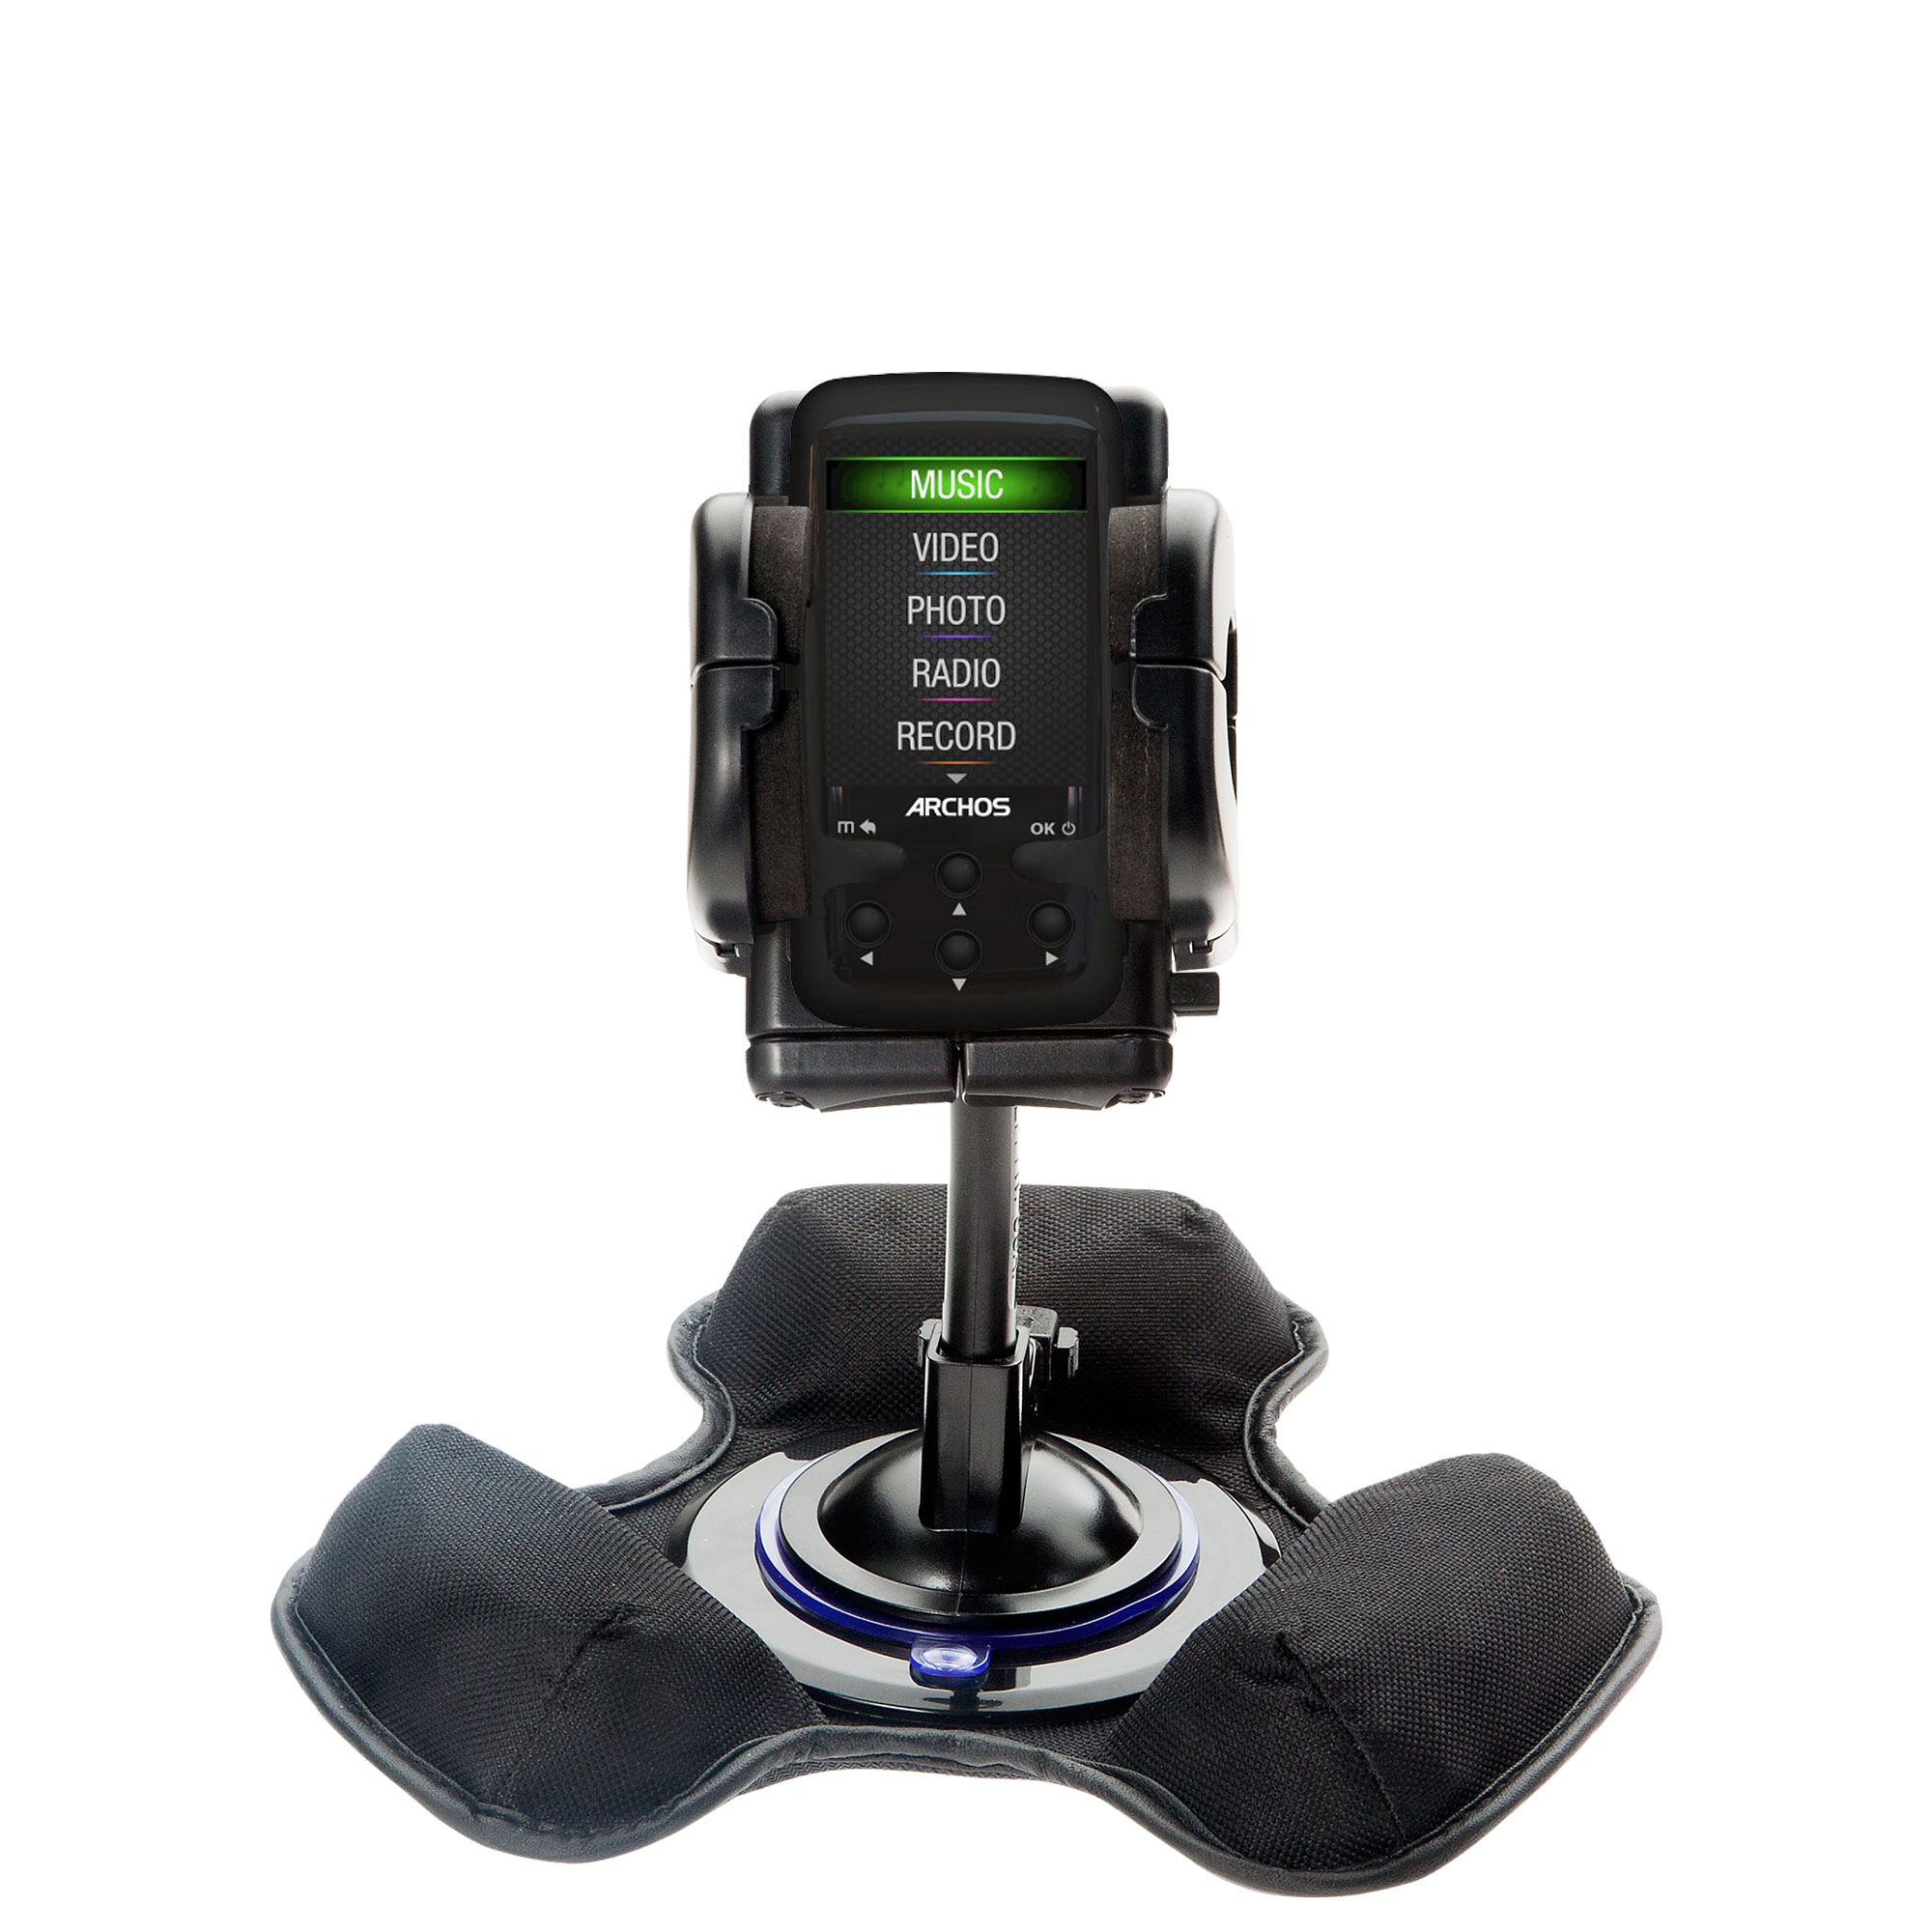 Dash and Windshield Holder compatible with the Archos 24 Vision AV24VB